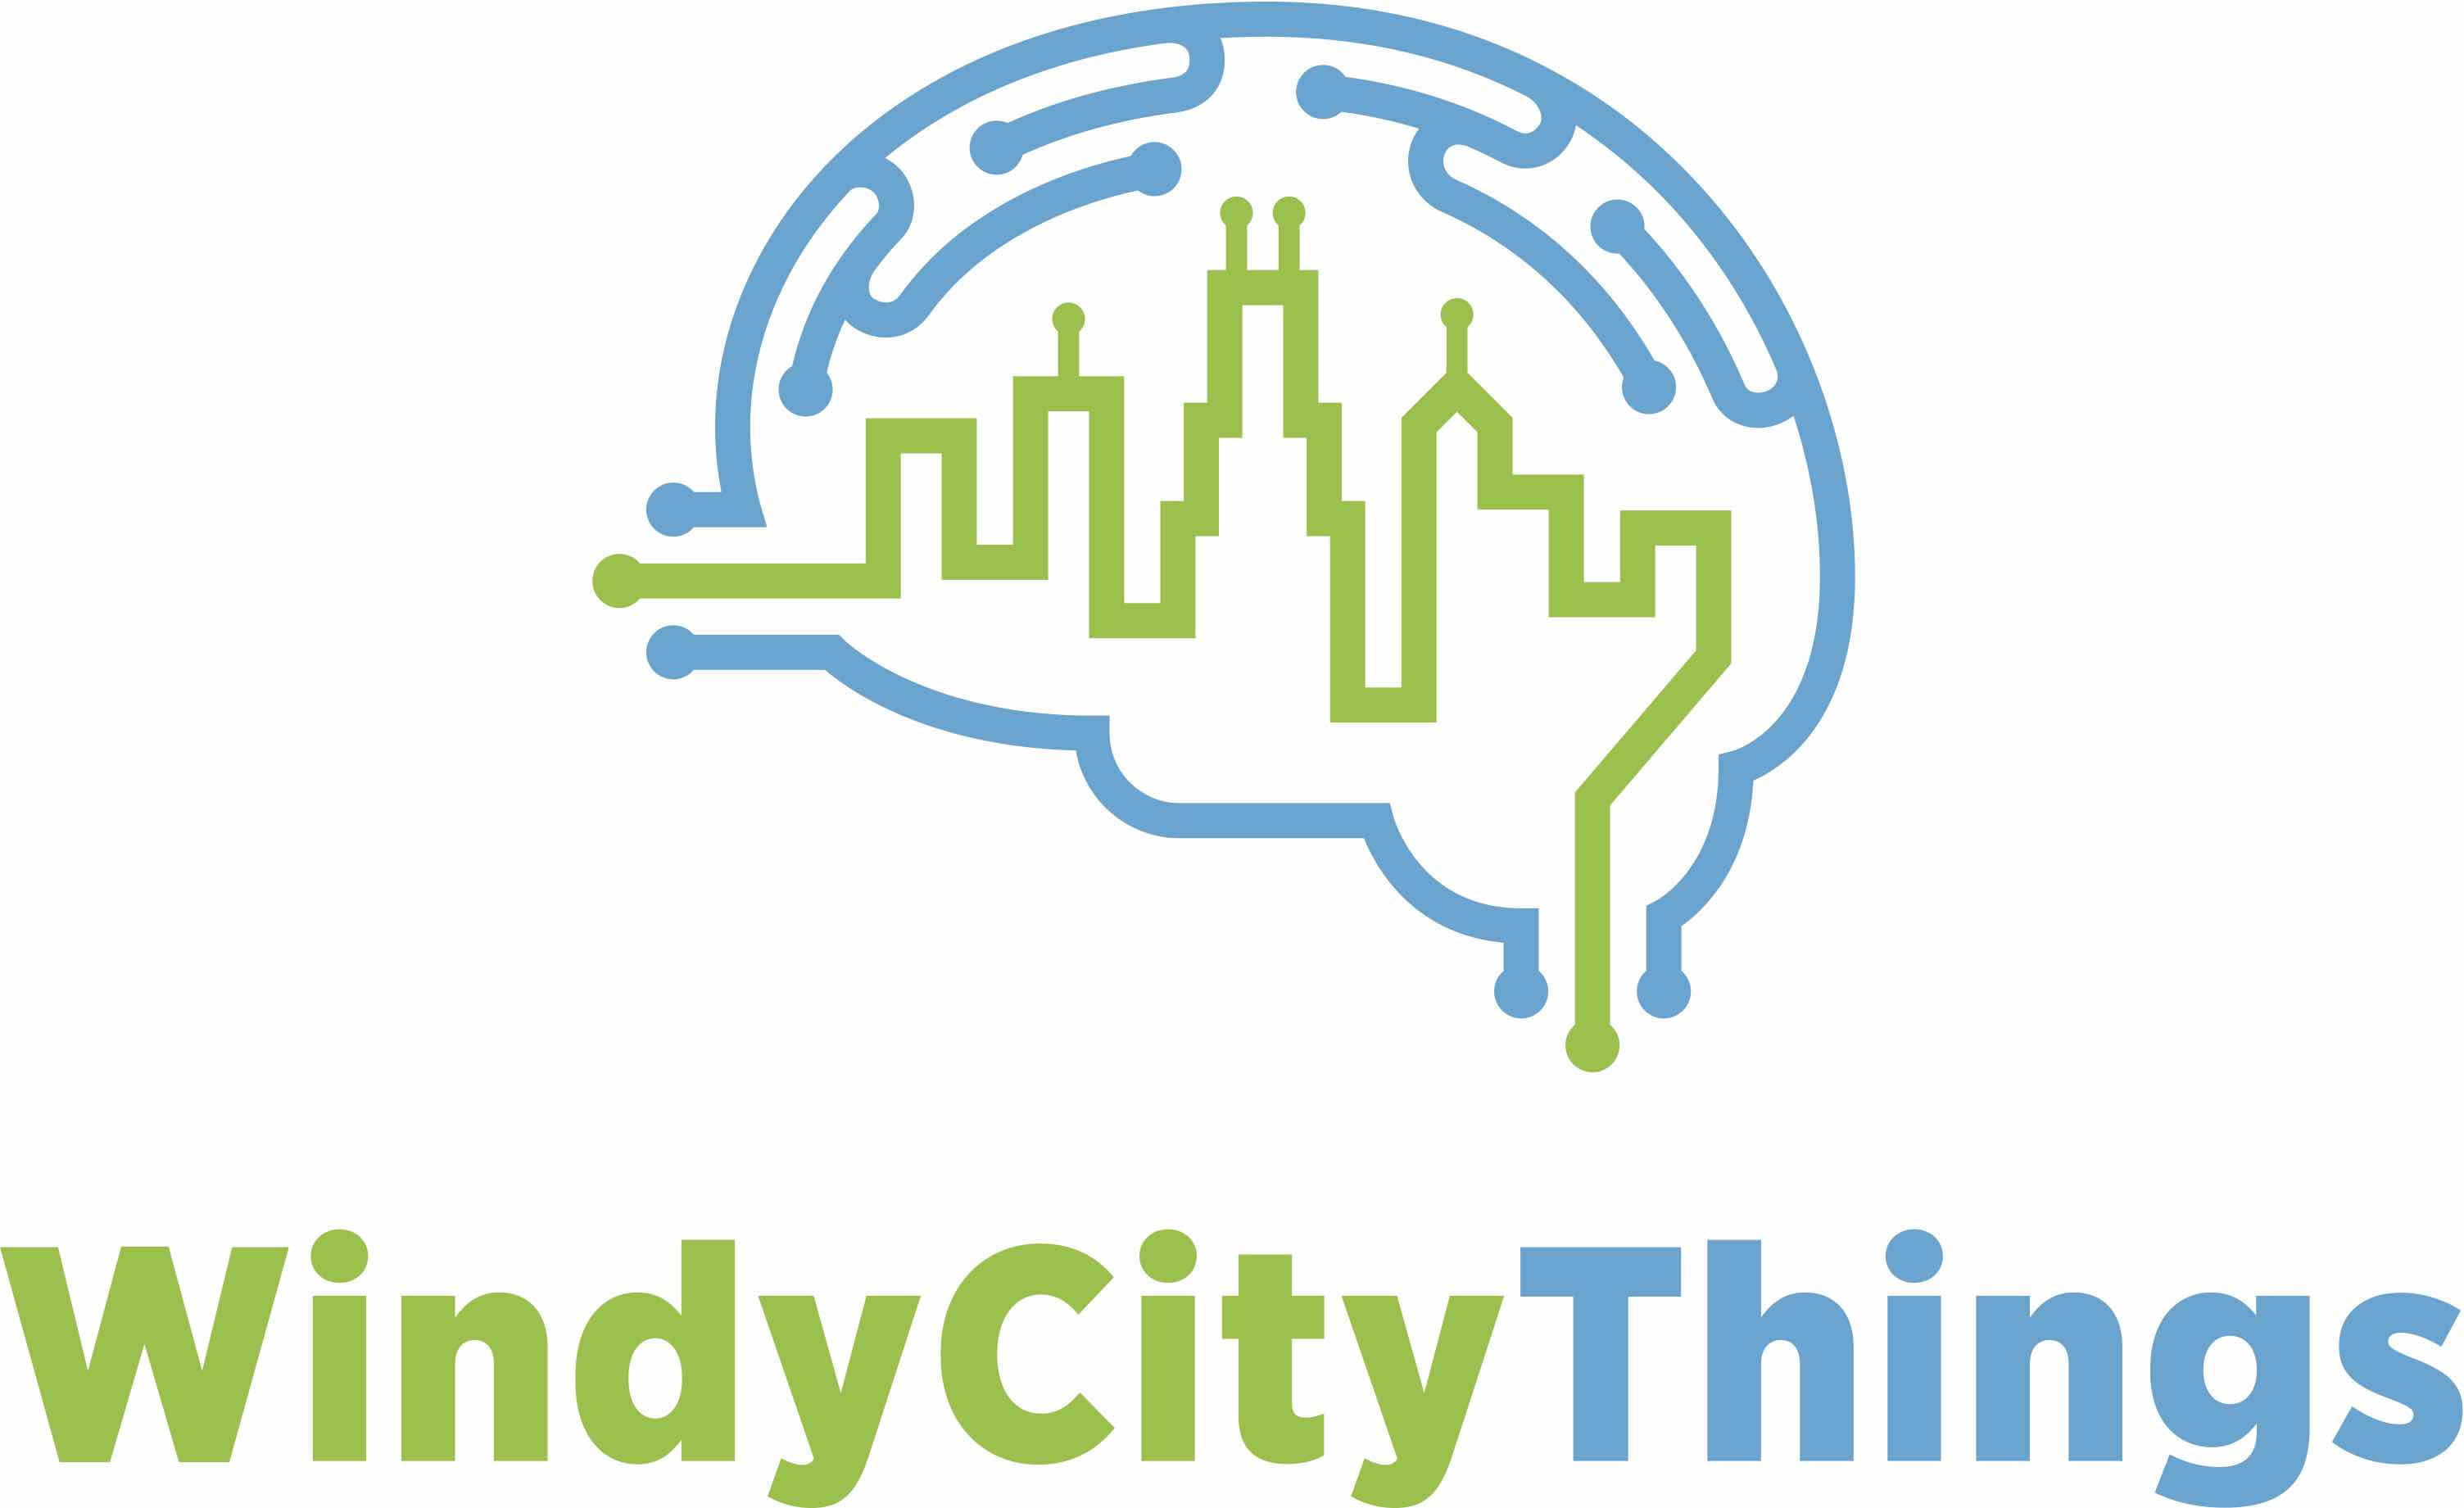 WindyCityThings - Internet of Things (IoT) Conference in Chicago, IL USA. Windy City Things.